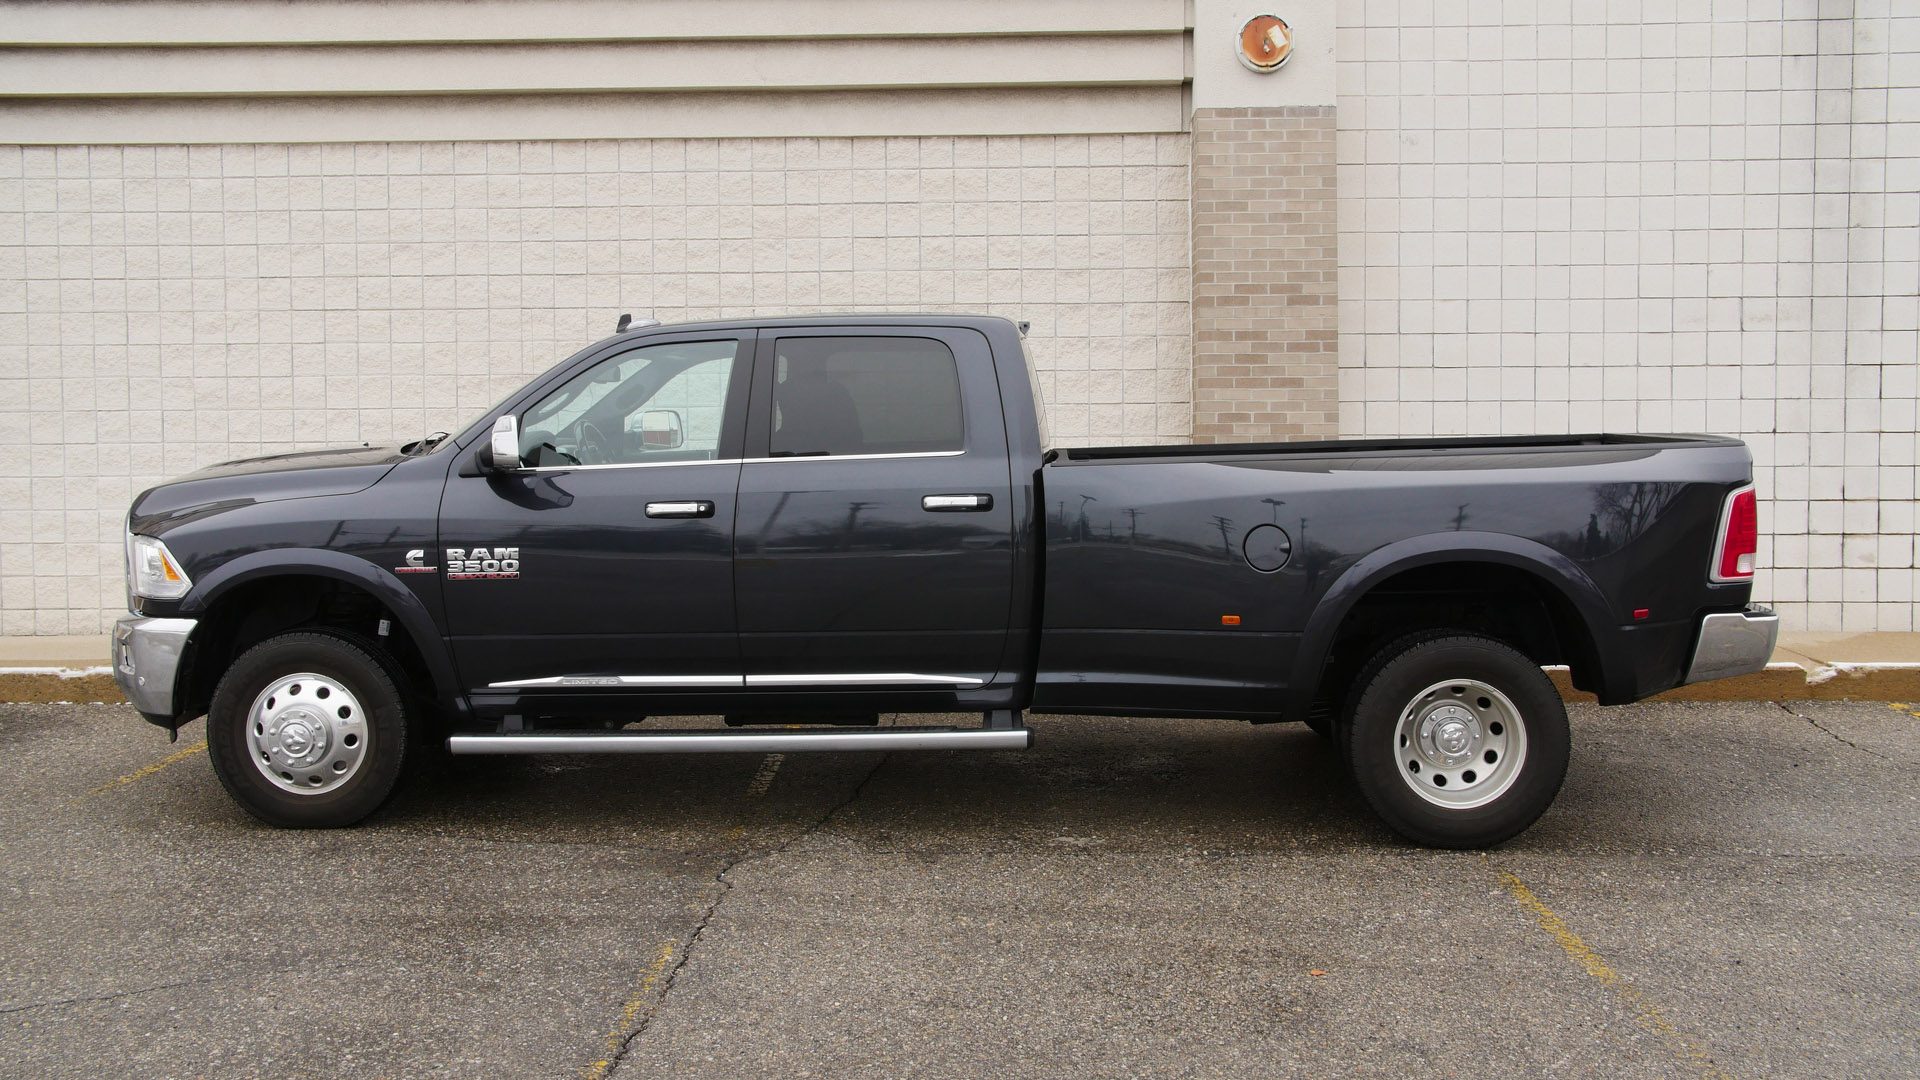 2016 Ram 3500 Limited: Looking Better than Ever